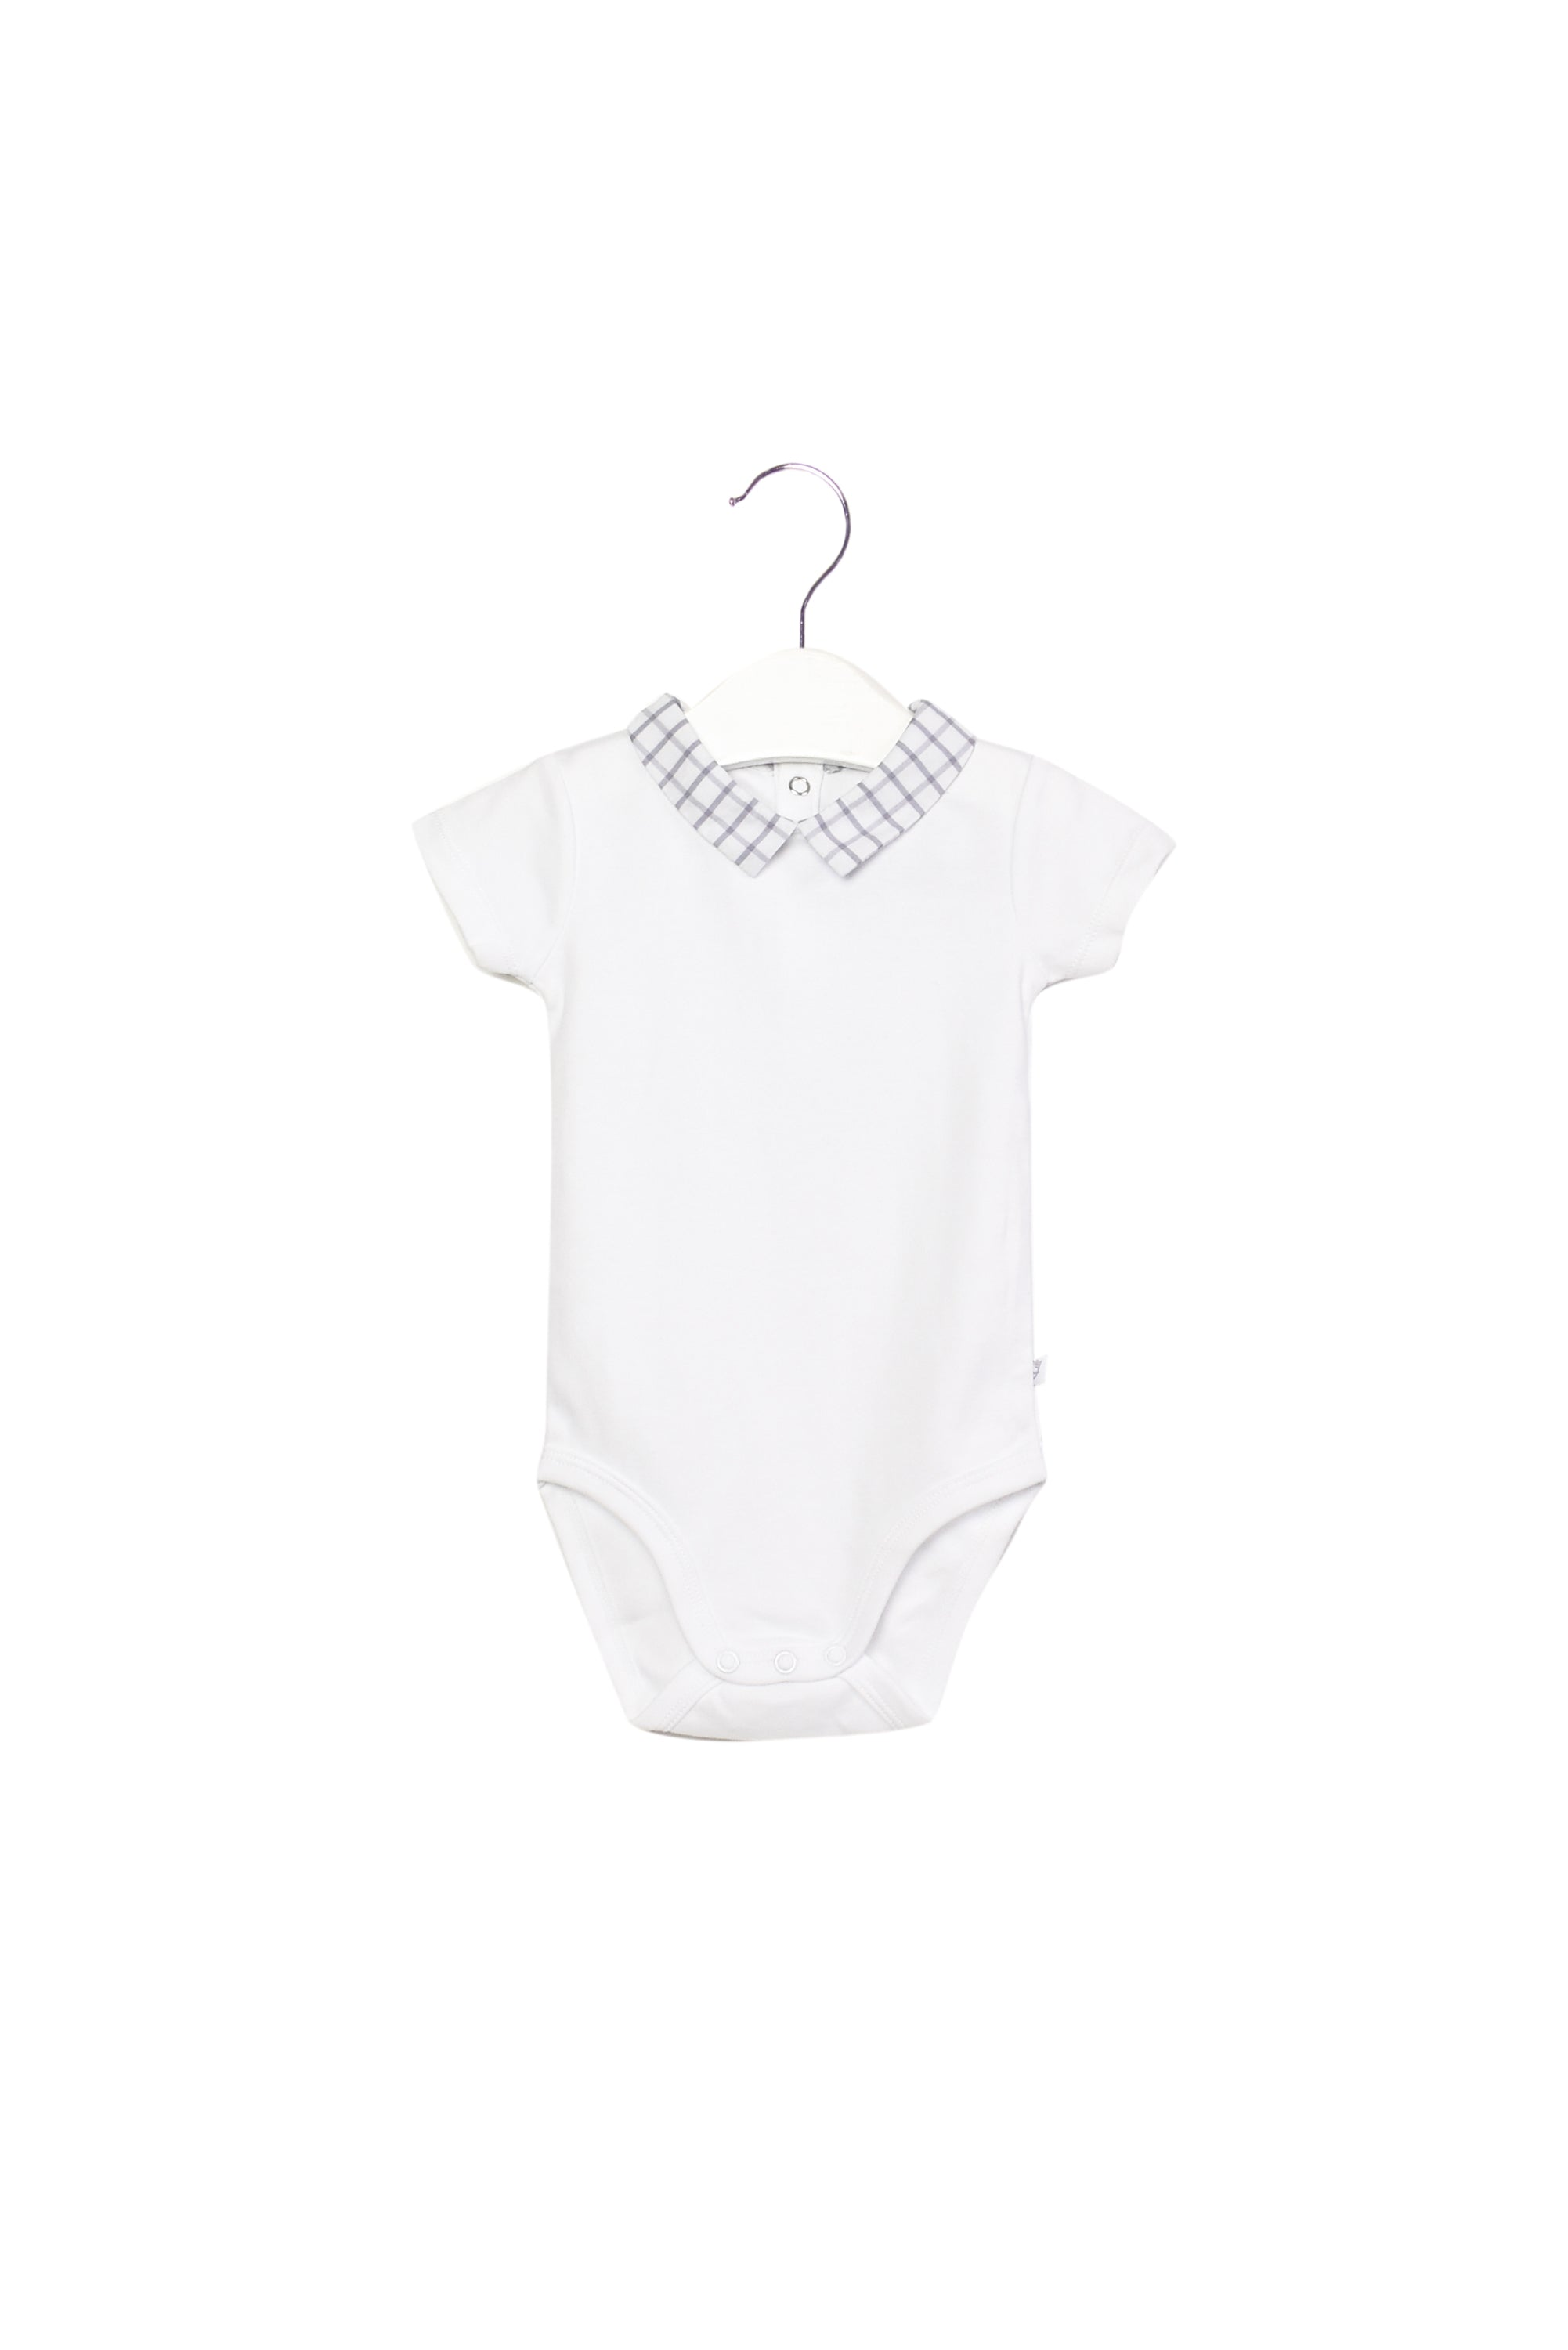 10013858 Jacadi Baby ~ Bodysuit 12M at Retykle